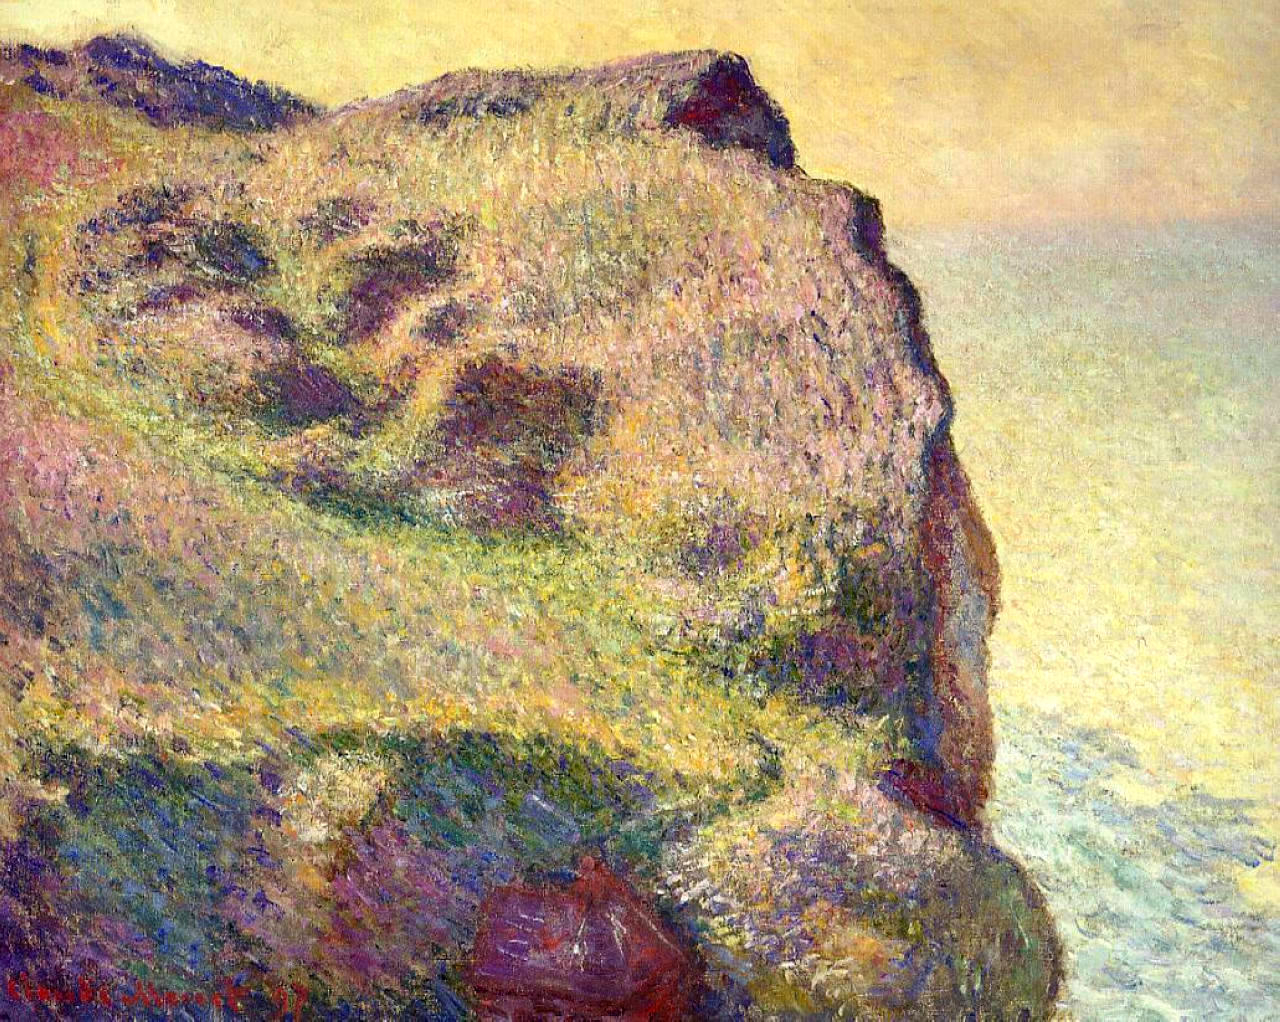 http://art-monet.com/image/1890/1897%20The%20Pointe%20du%20Petit%20Ailly.jpg